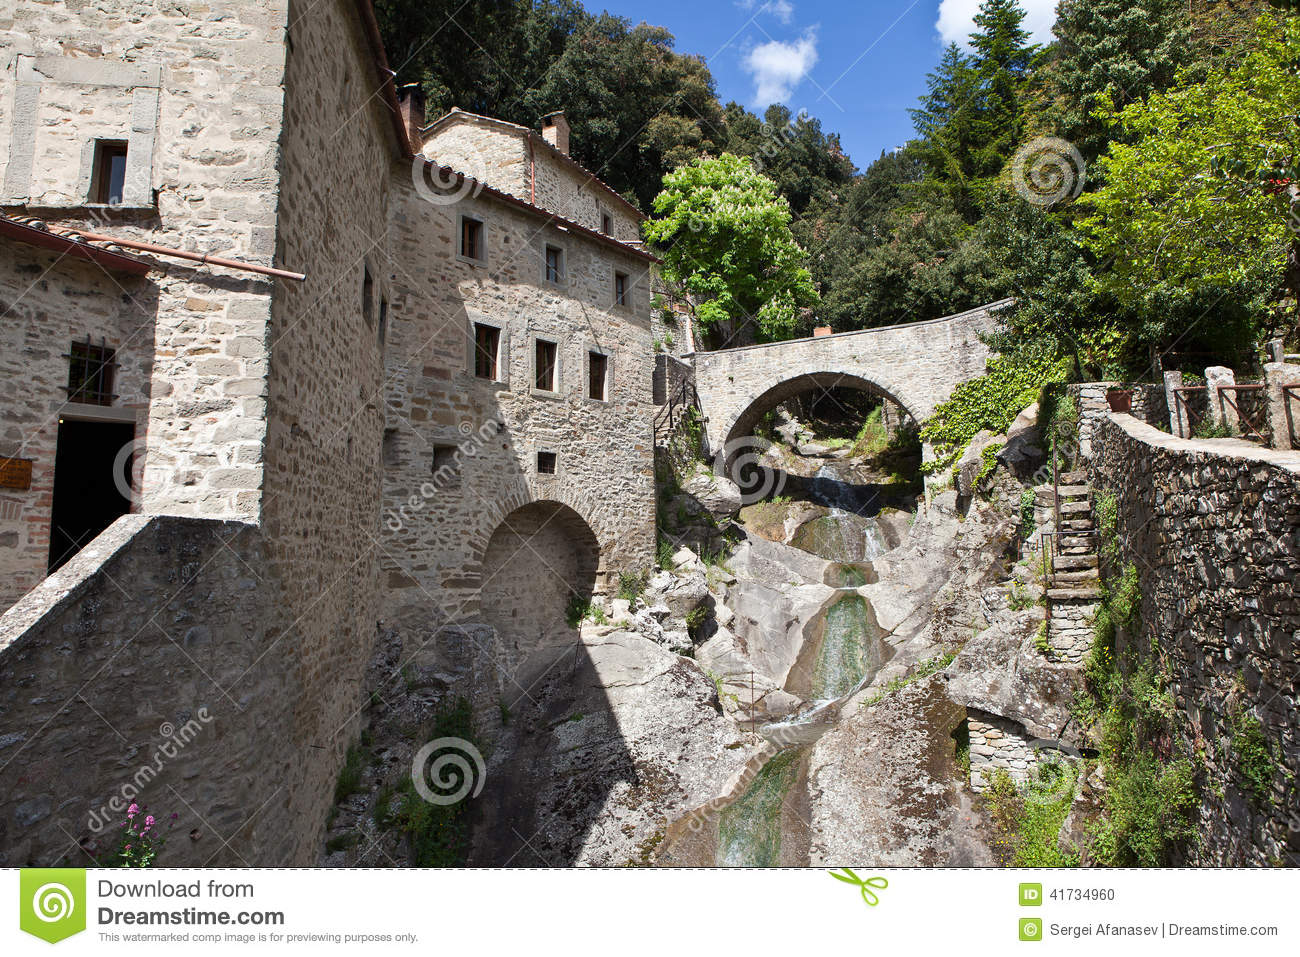 Monastery in le celle home near cortona the monastery was founded